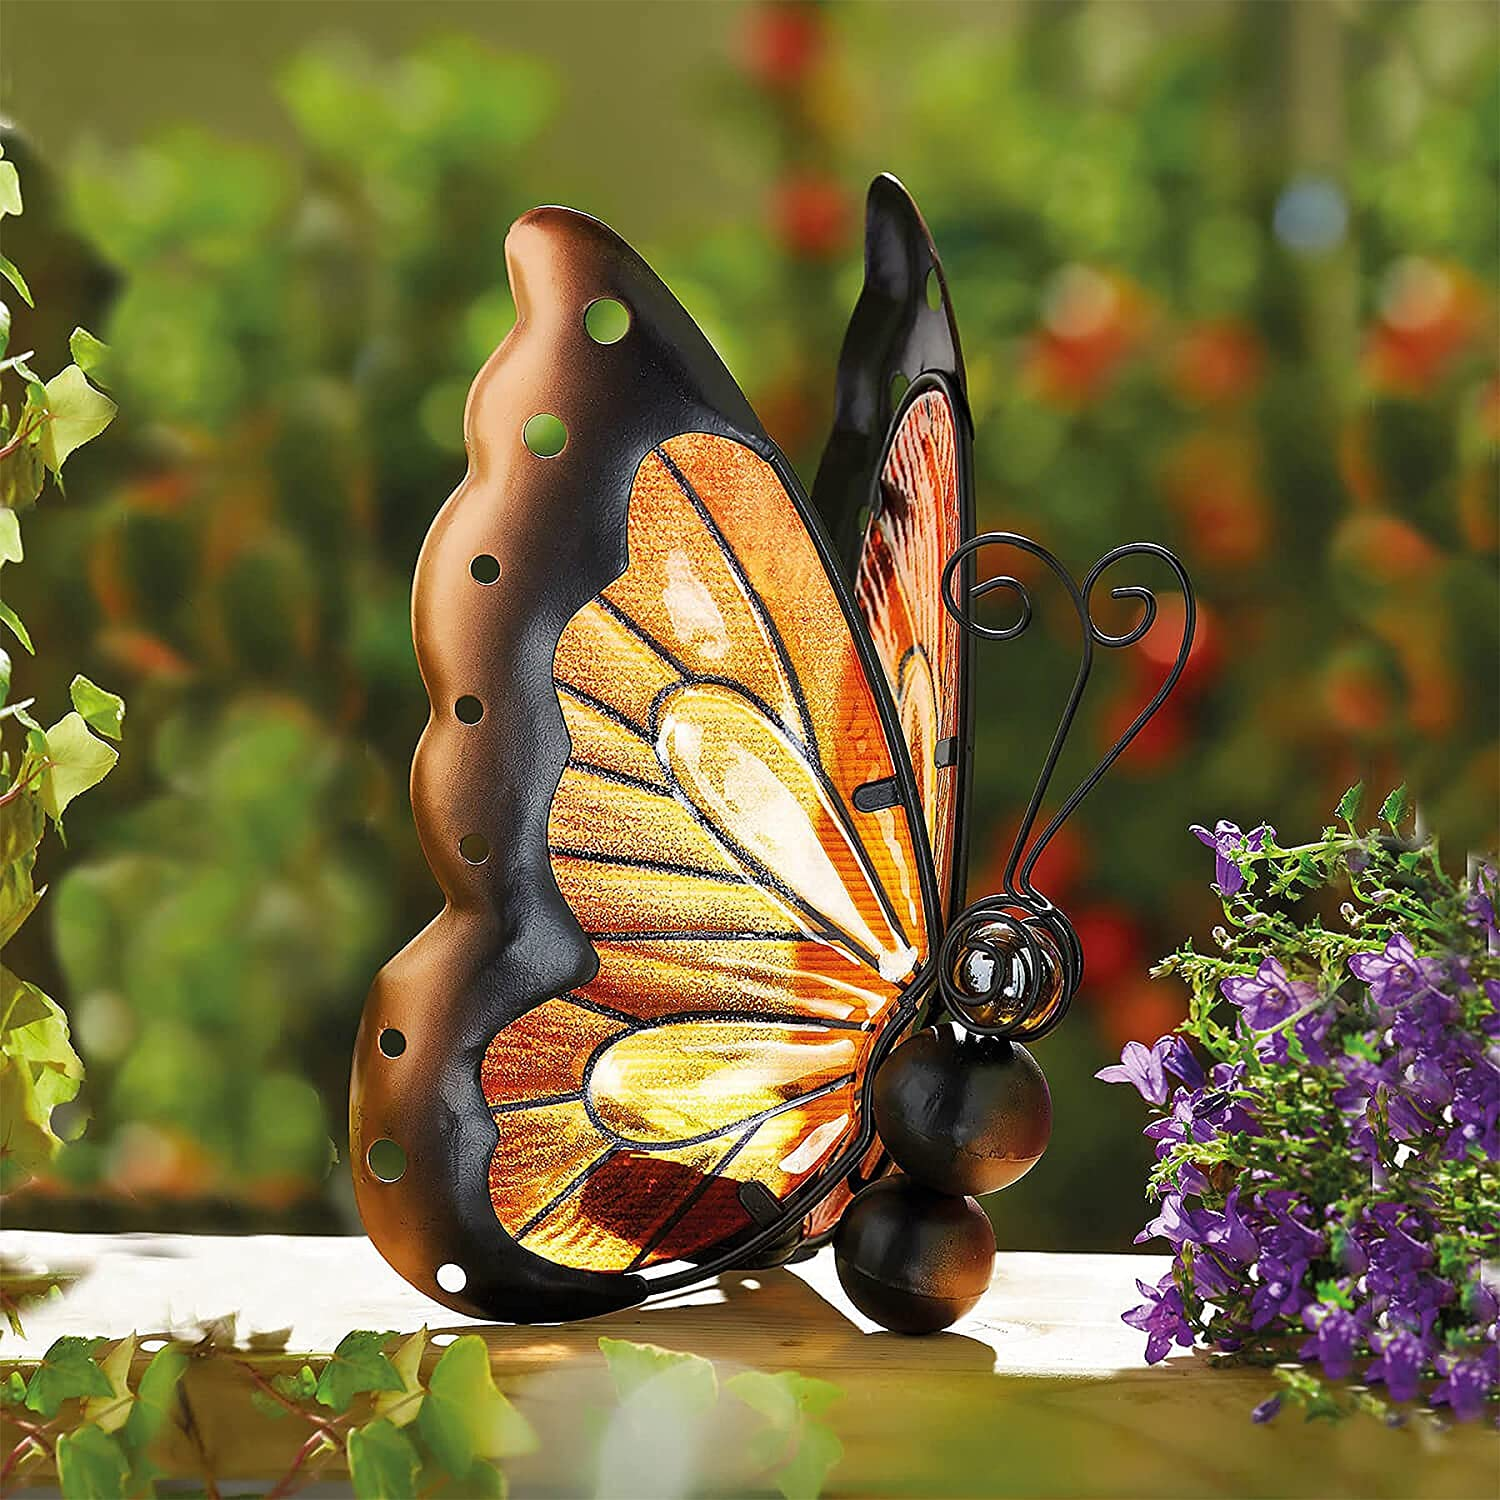 Outdoor Garden Solar Light, Solar Powered Butterfly Statues LED Lighted, Metal Yard Art Decor Statue for Walkway/Pathway/Lawn